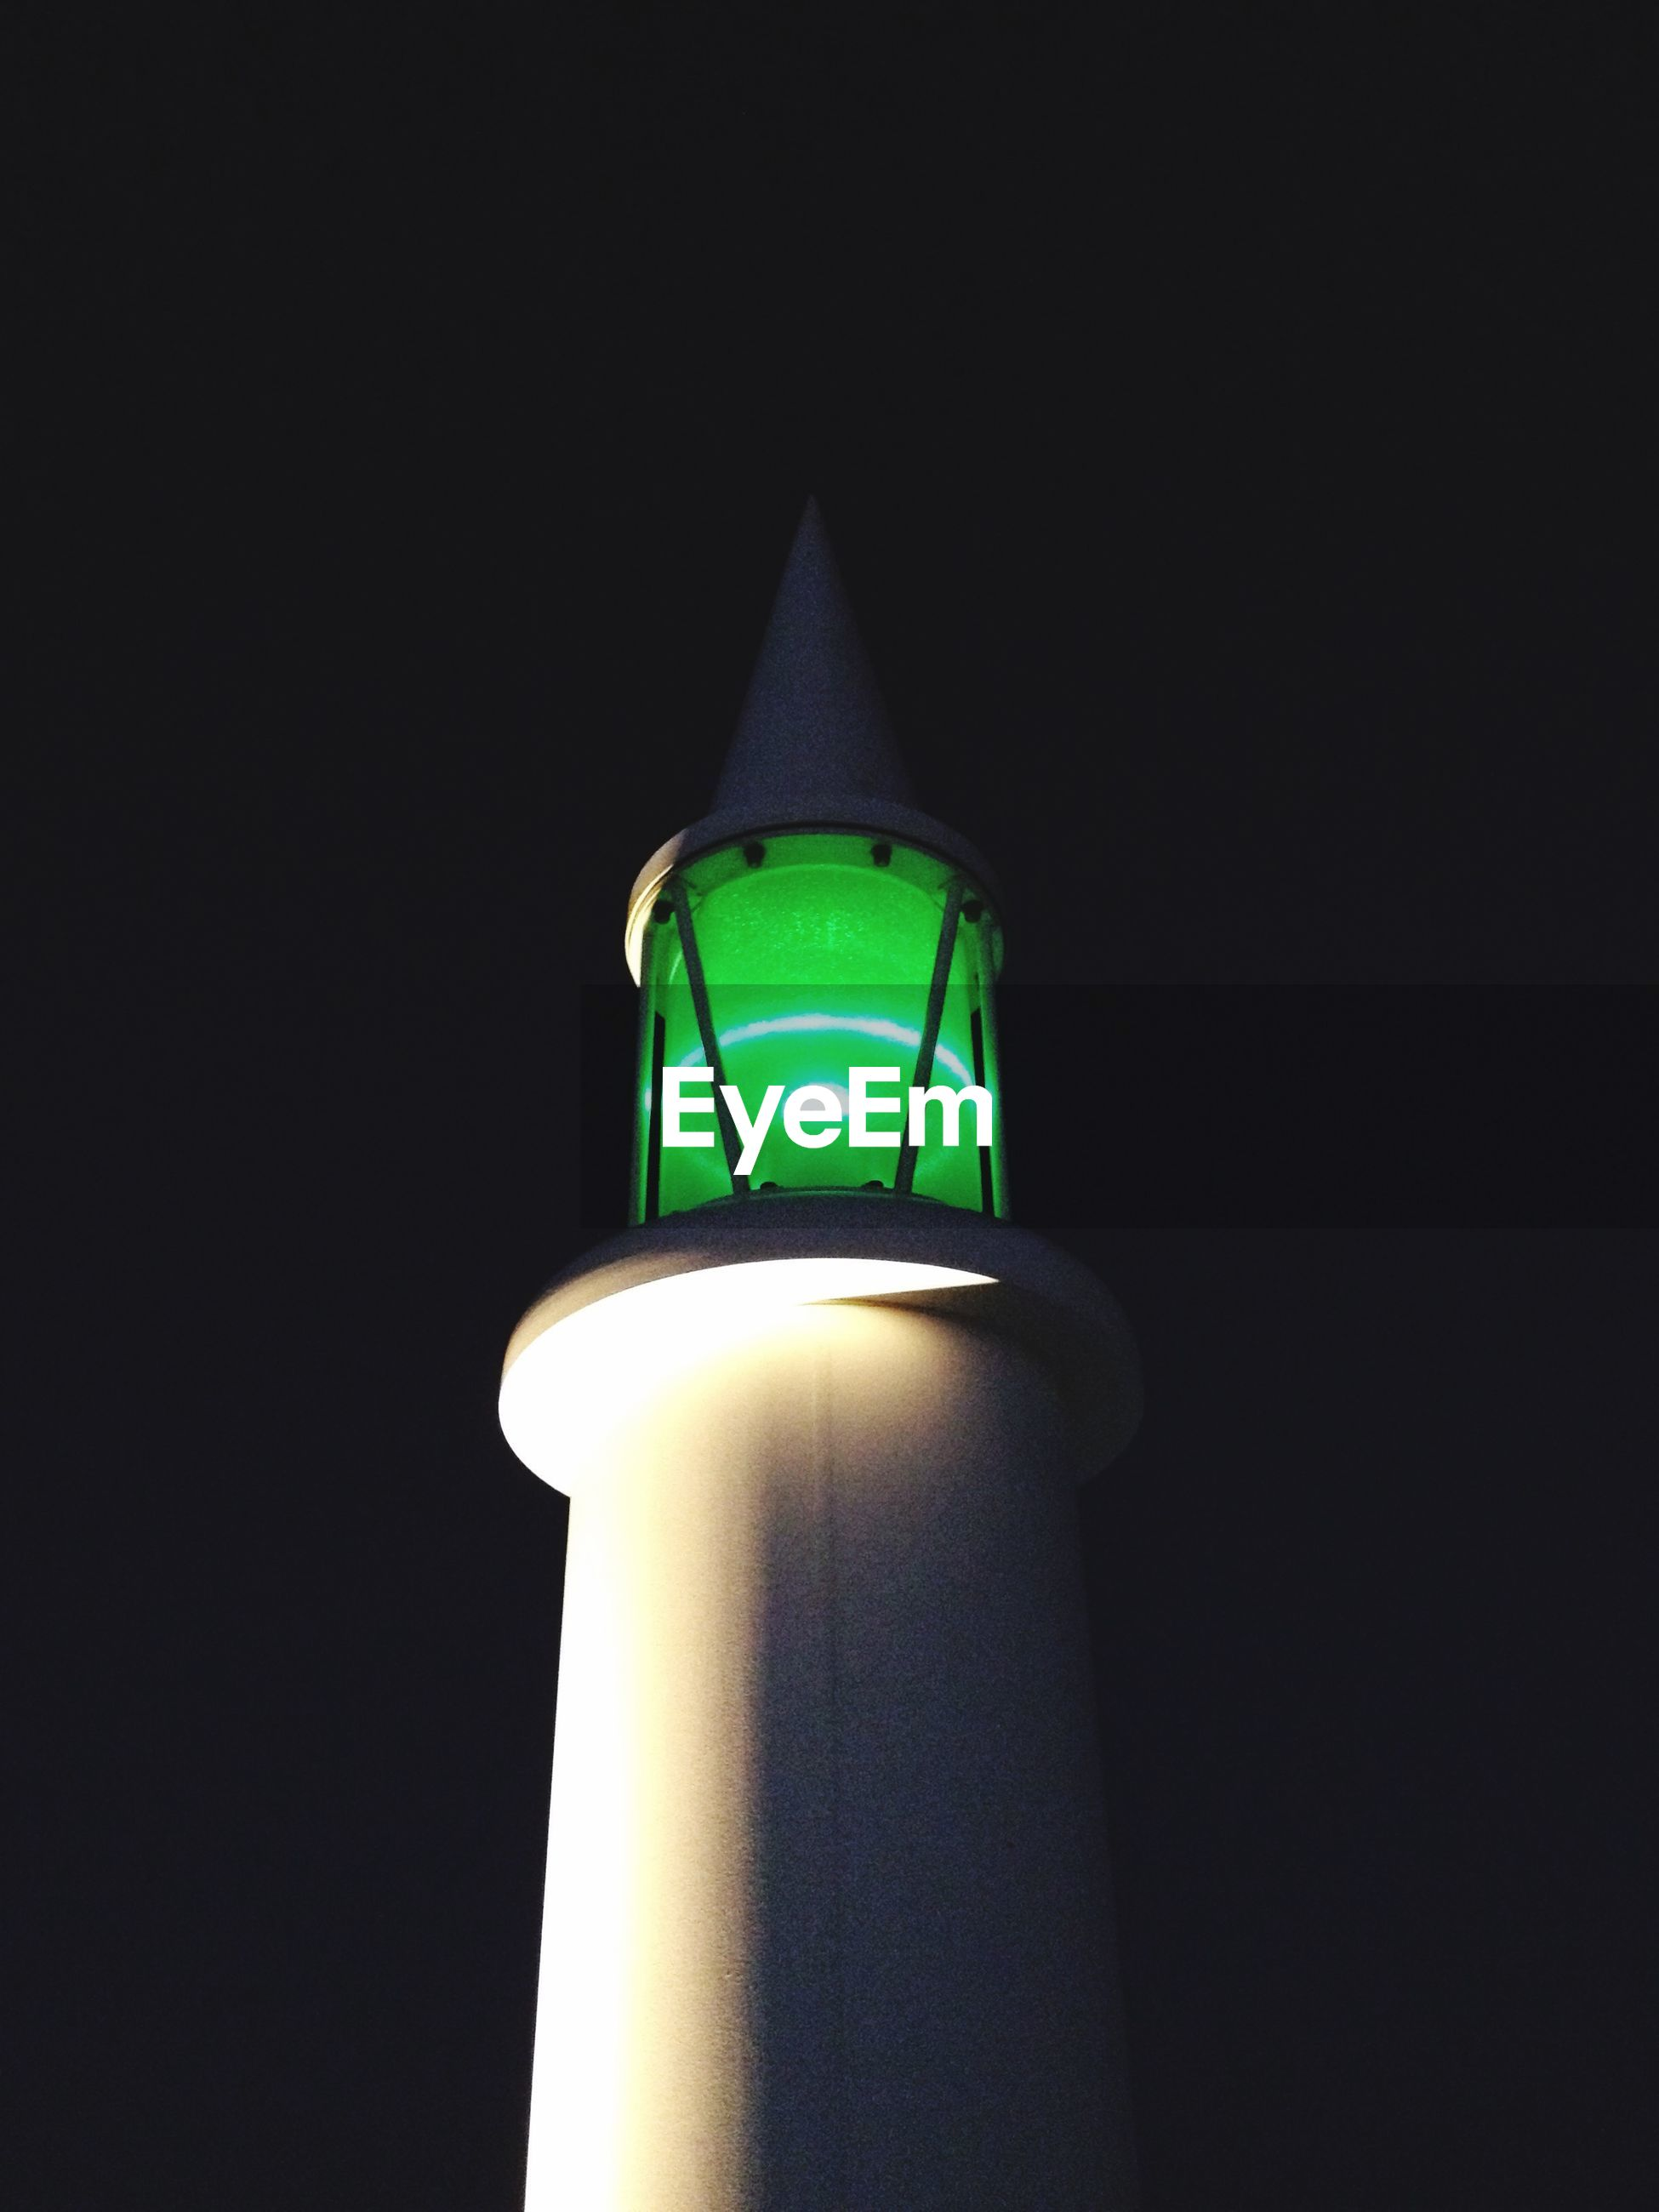 Low angle view of illuminated green light at night